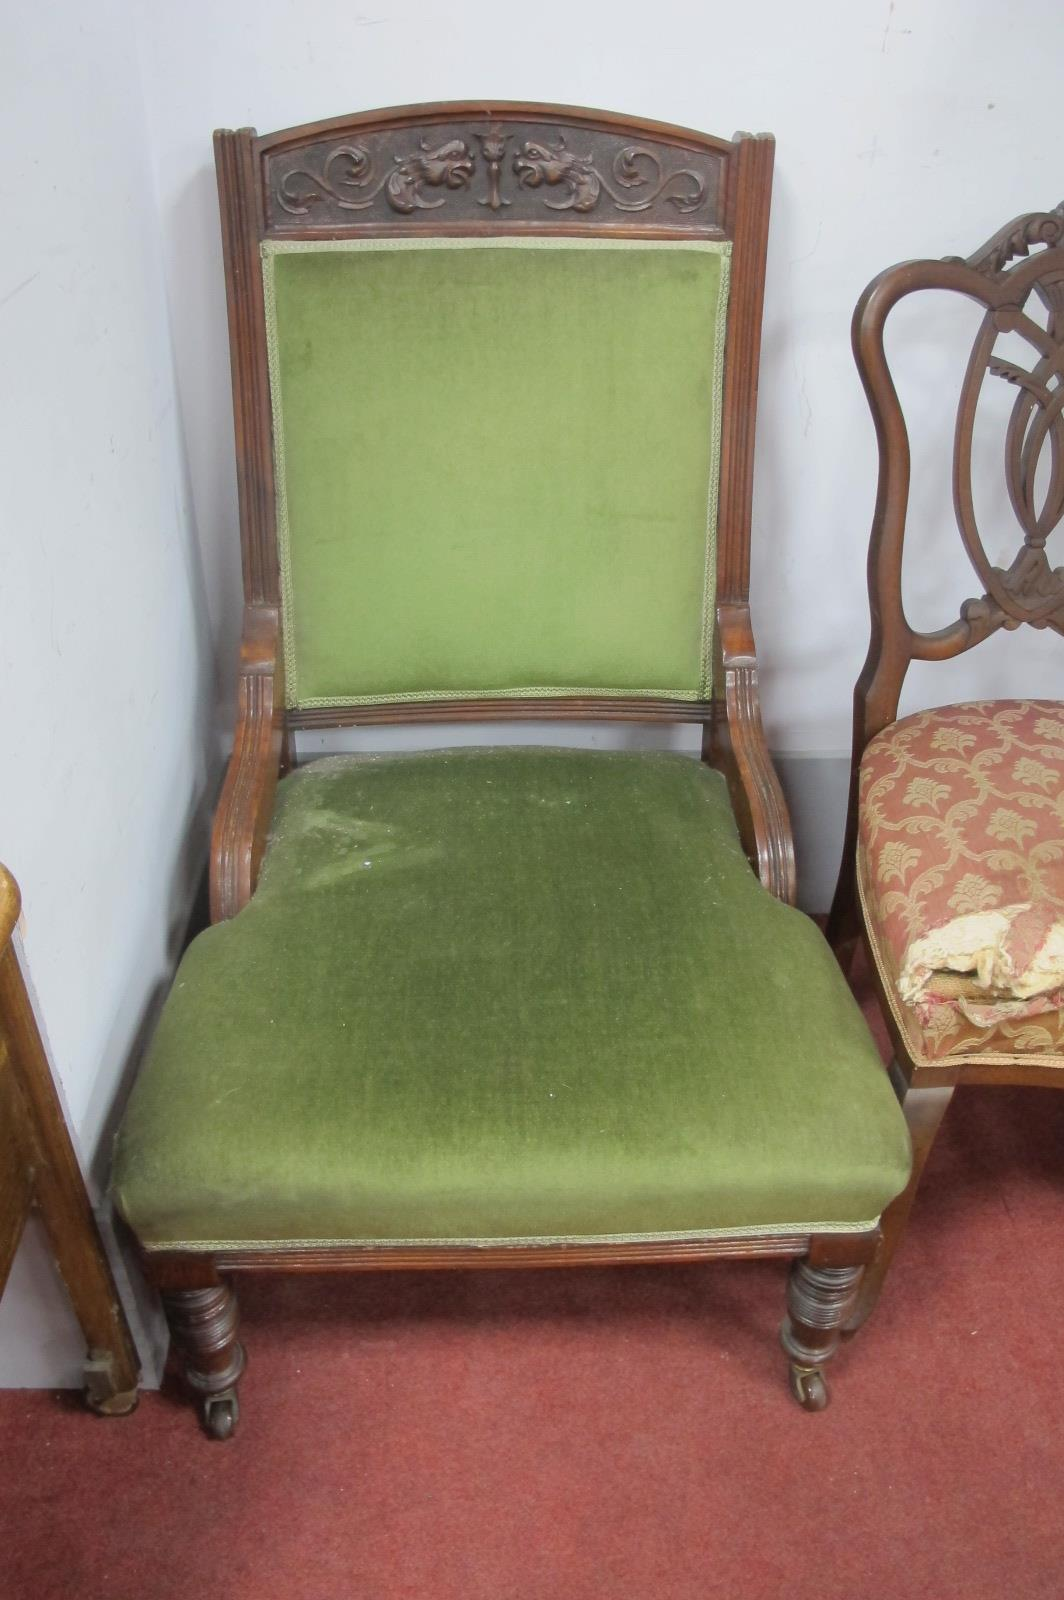 And Edwardian Salon Easy Chair, with mask carving, turned legs, upholstered in green draylon.